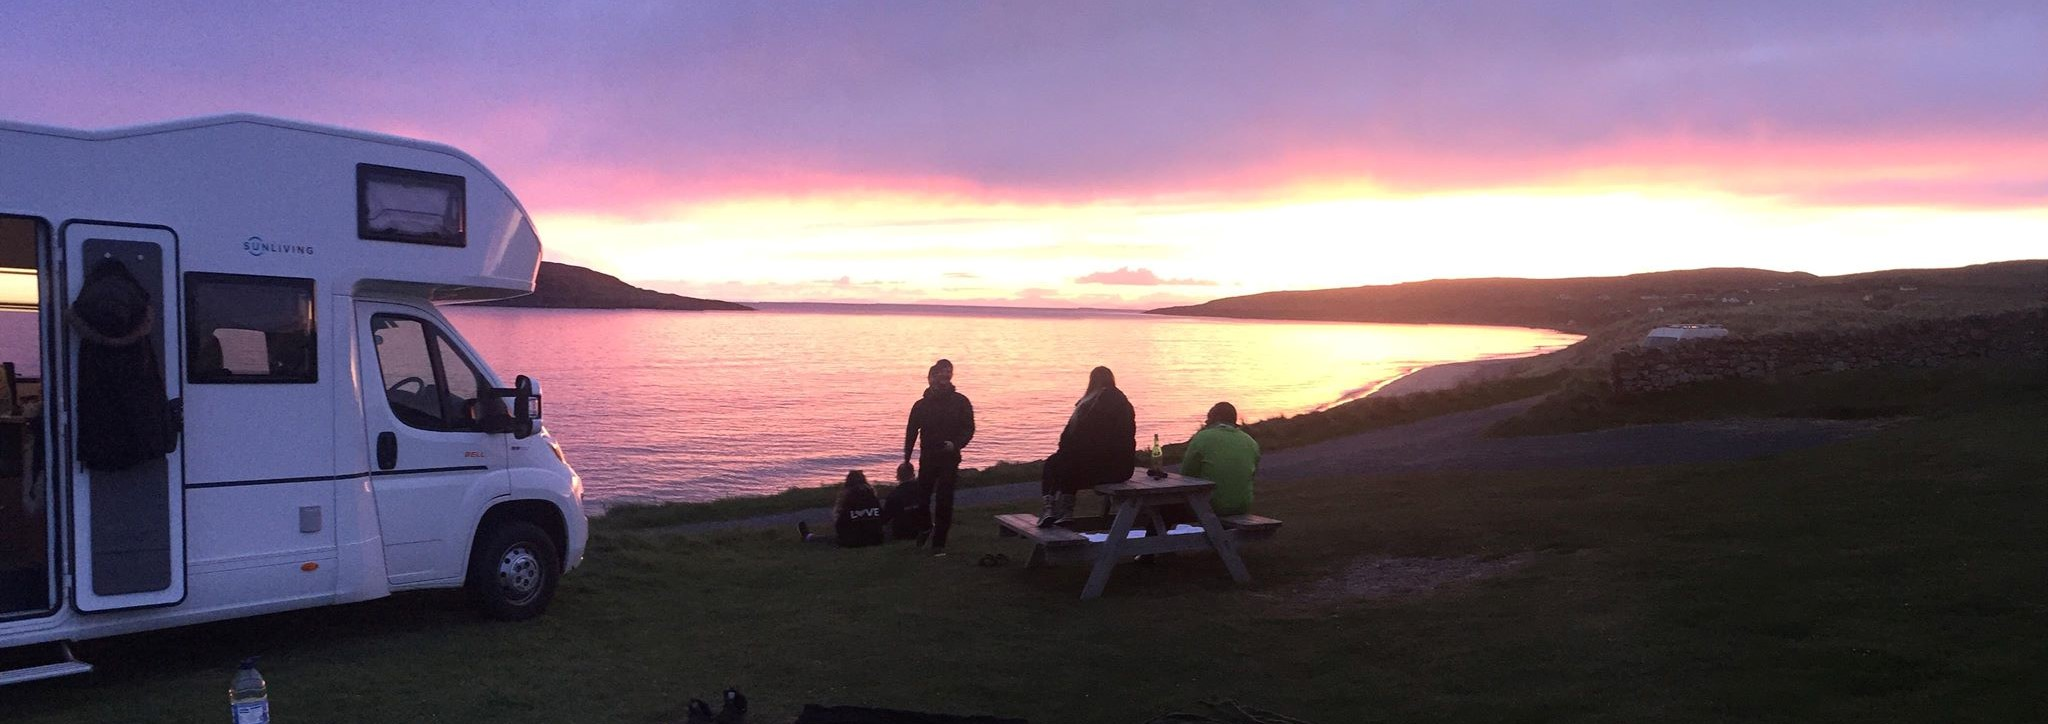 People watching a sunset on the beach next to a caravan in Scotland